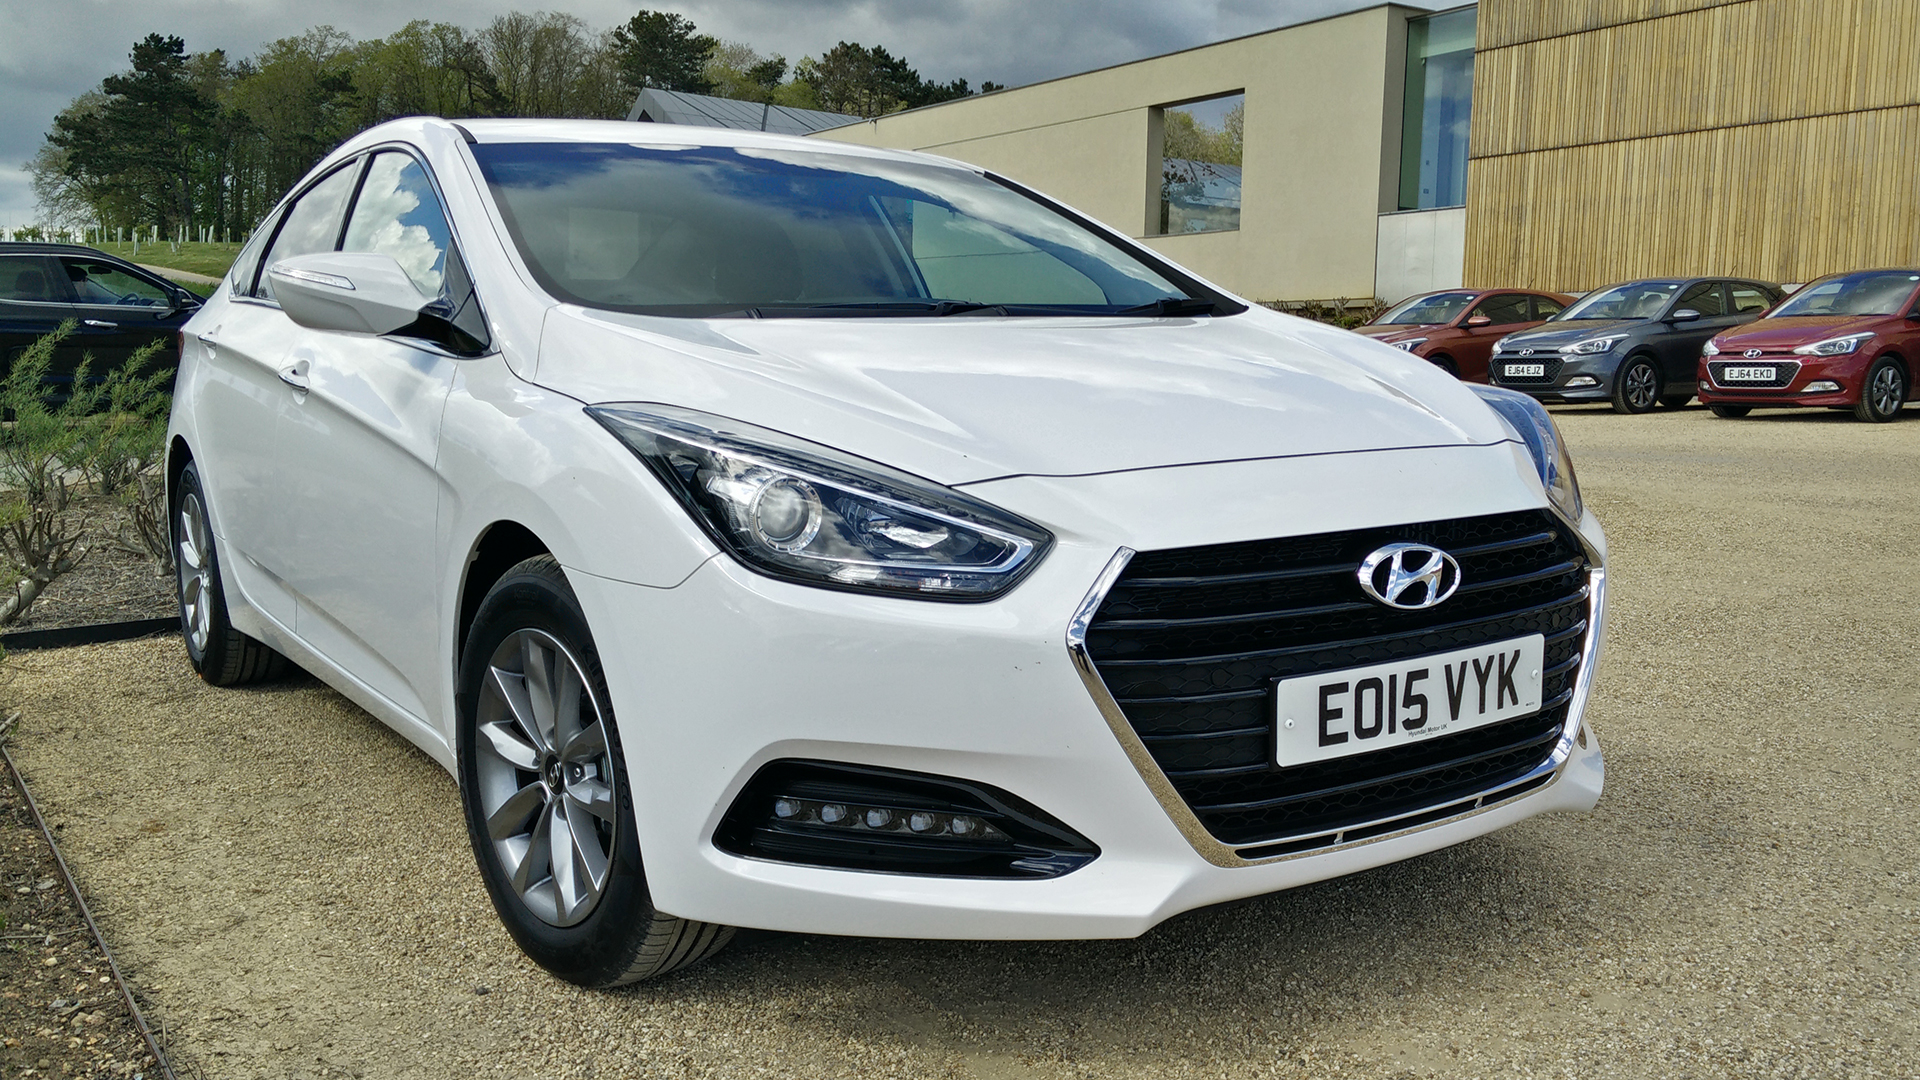 Used Hyundai I40 Cars For Sale On Auto Trader Uk Autos Post